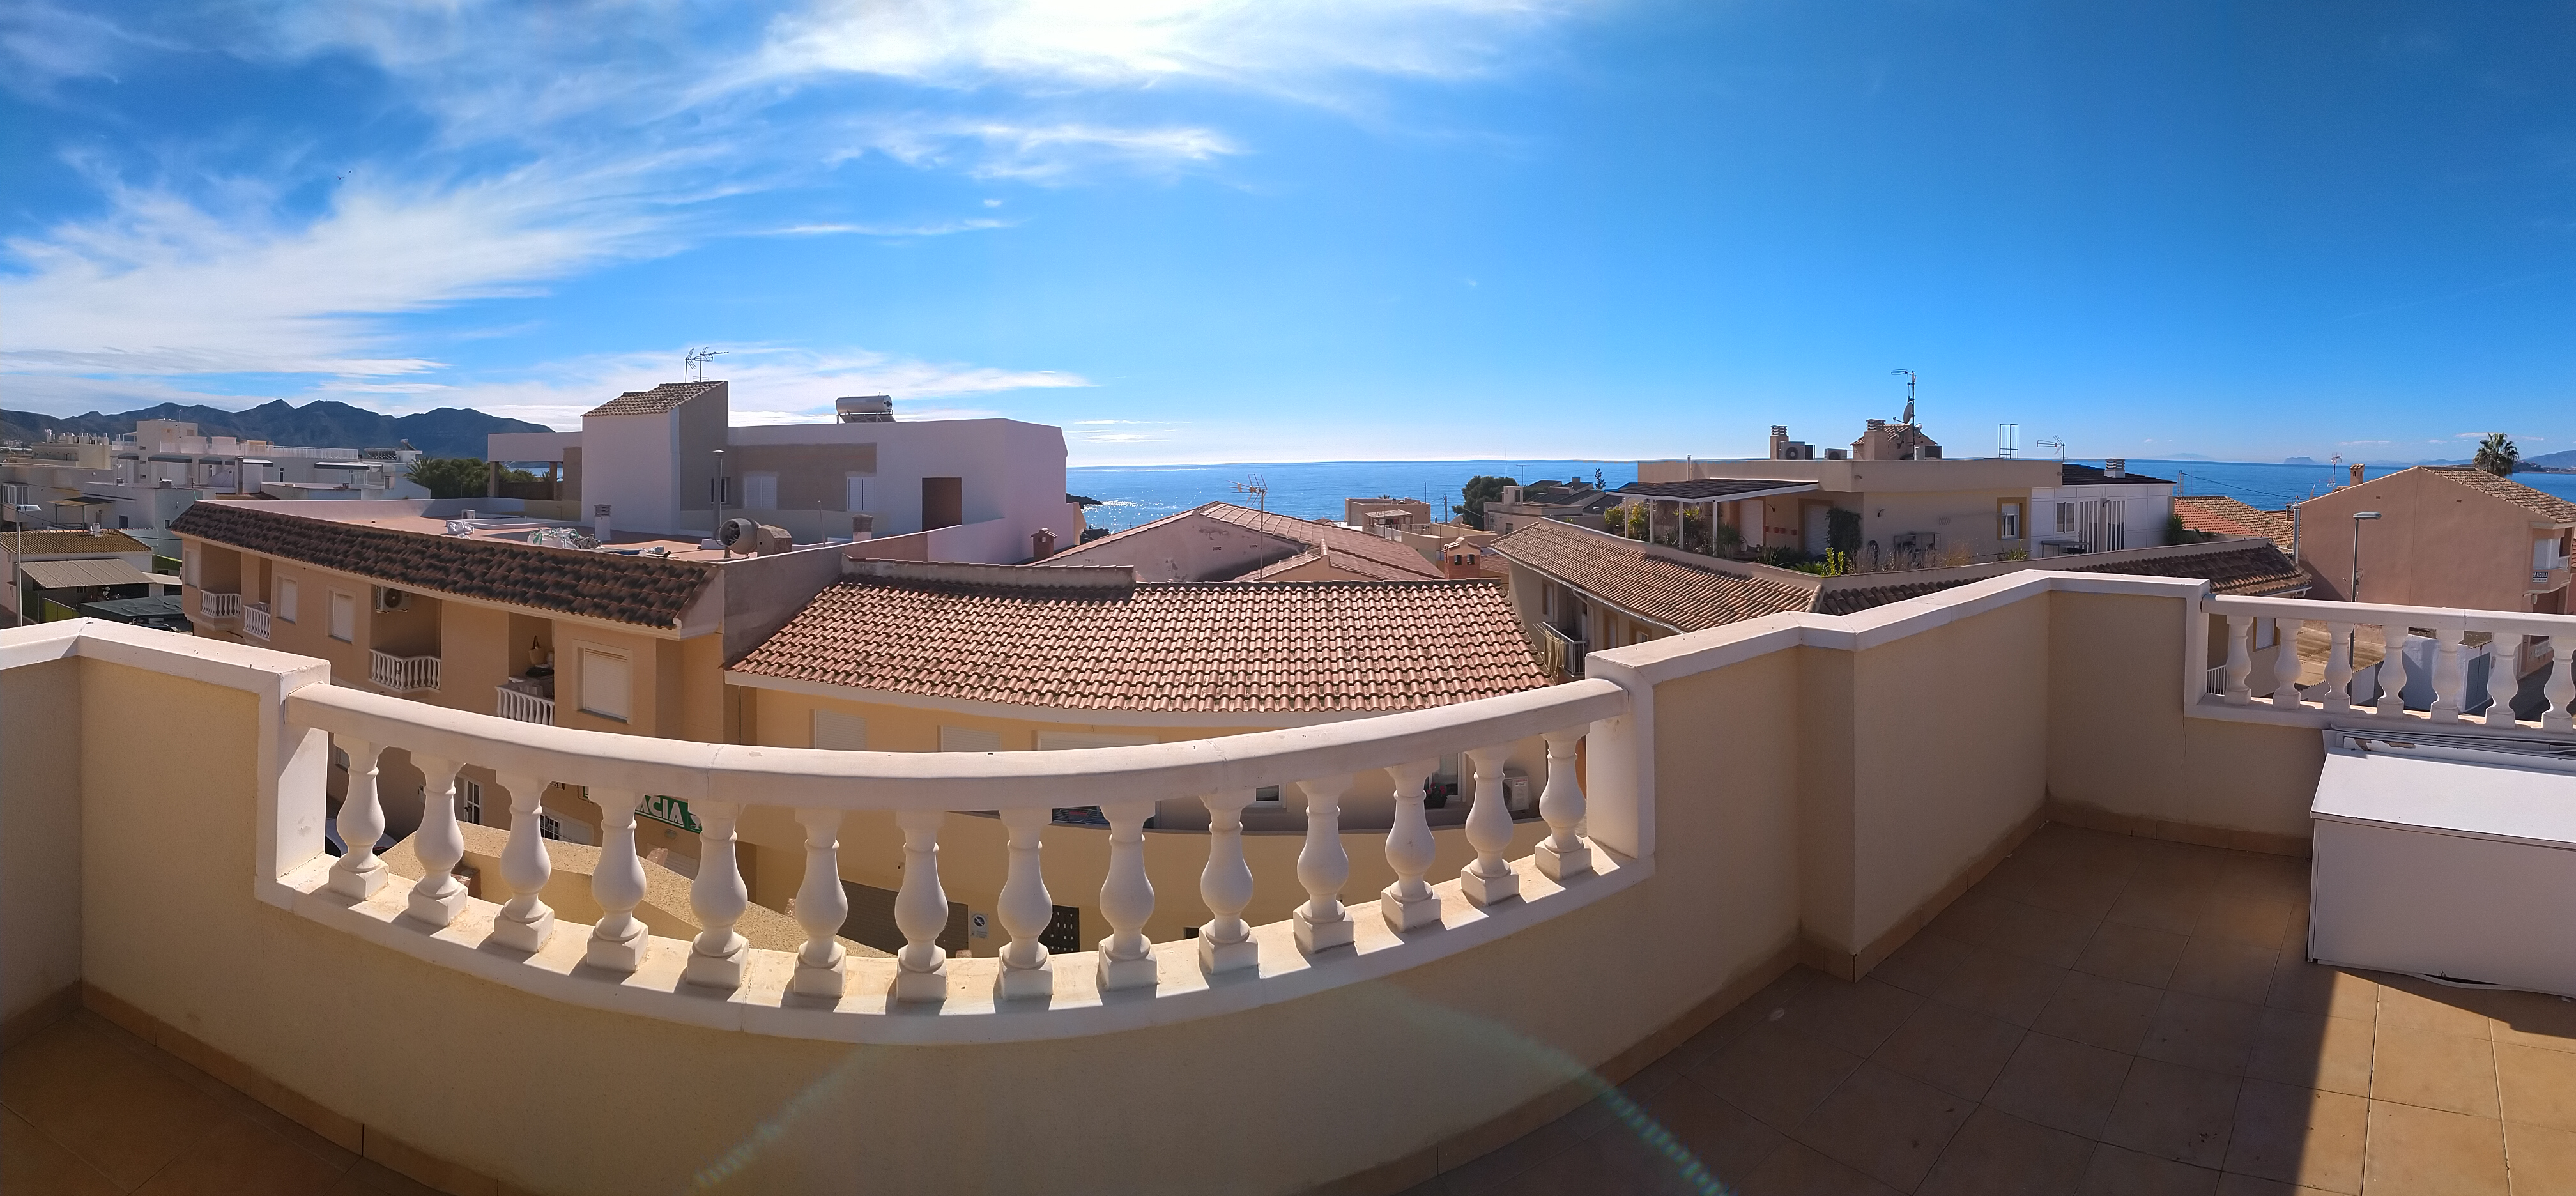 1406. PENTHOUSE APARTMENT 1B – TERRACE FRONT PLUS SOLARIUM 50M2 SEAVIEWS – CENTER.